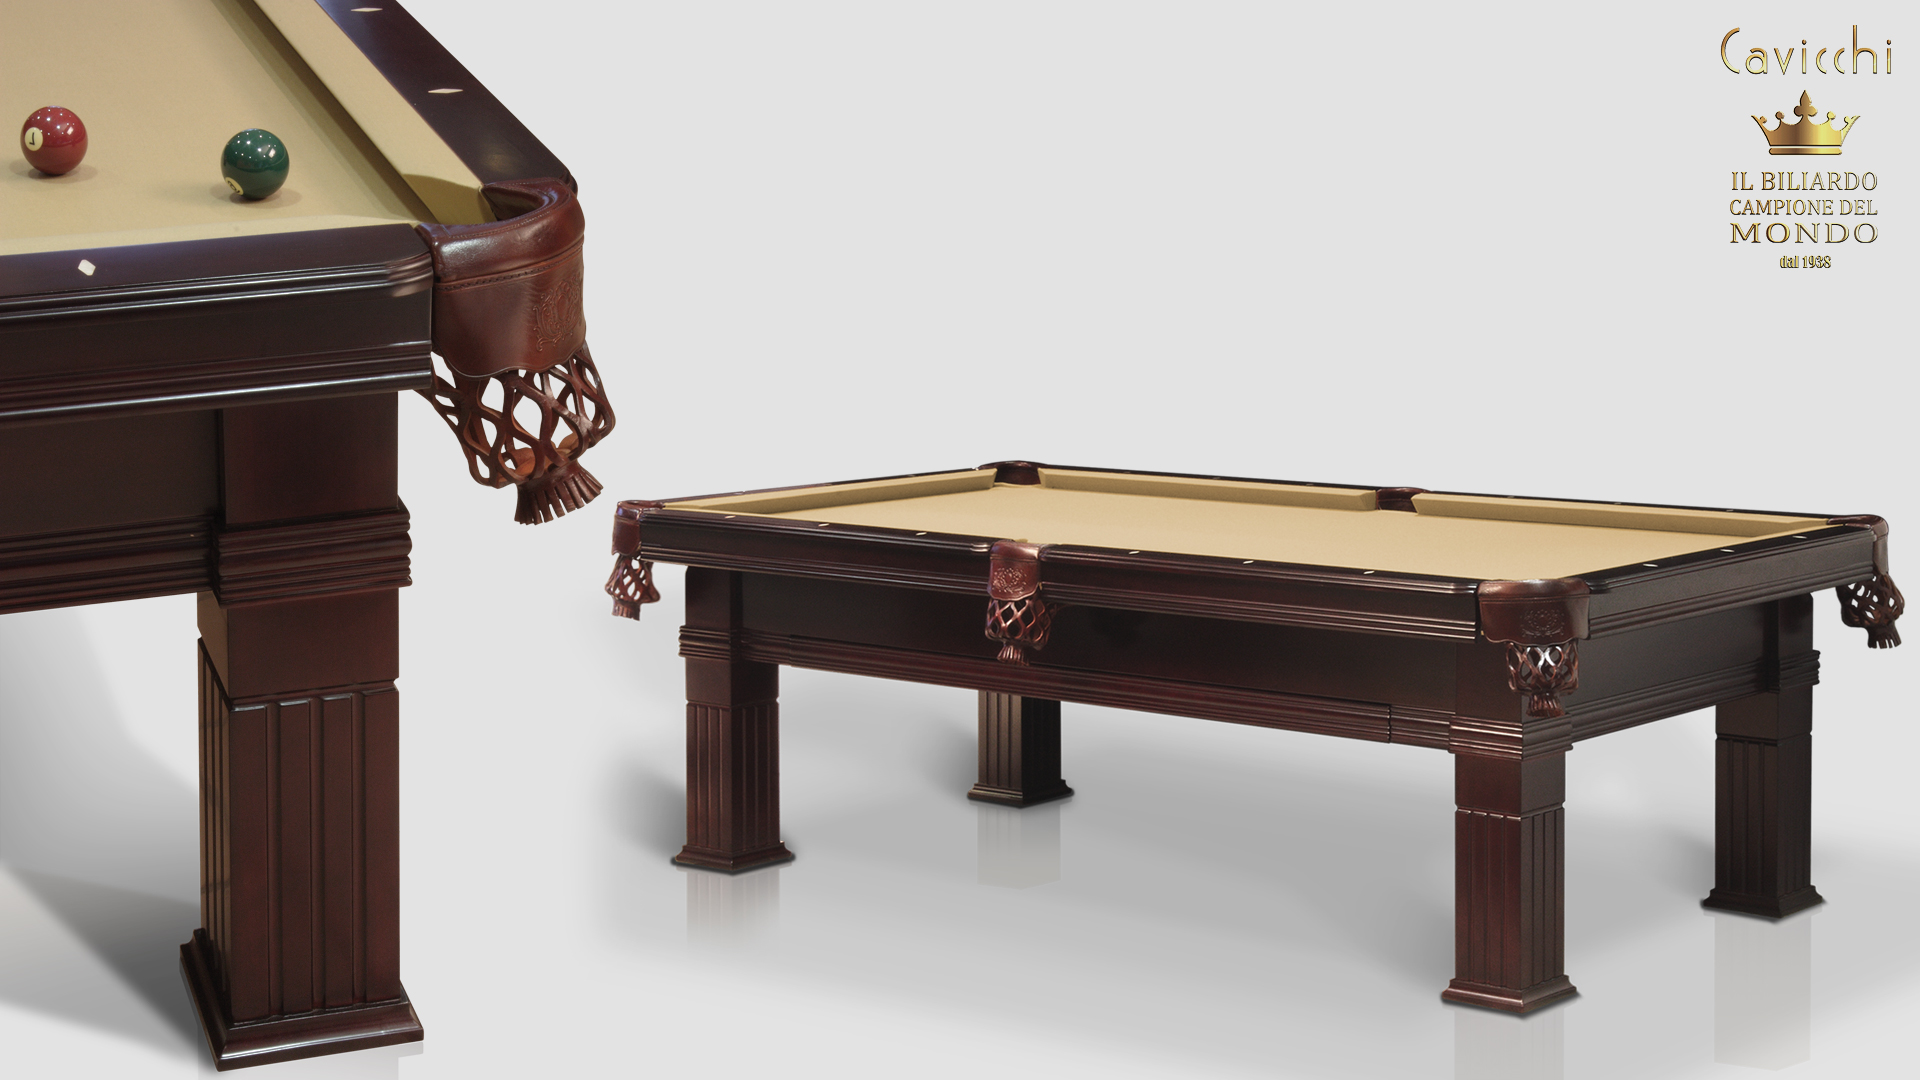 Gotha Pool Billiard 1